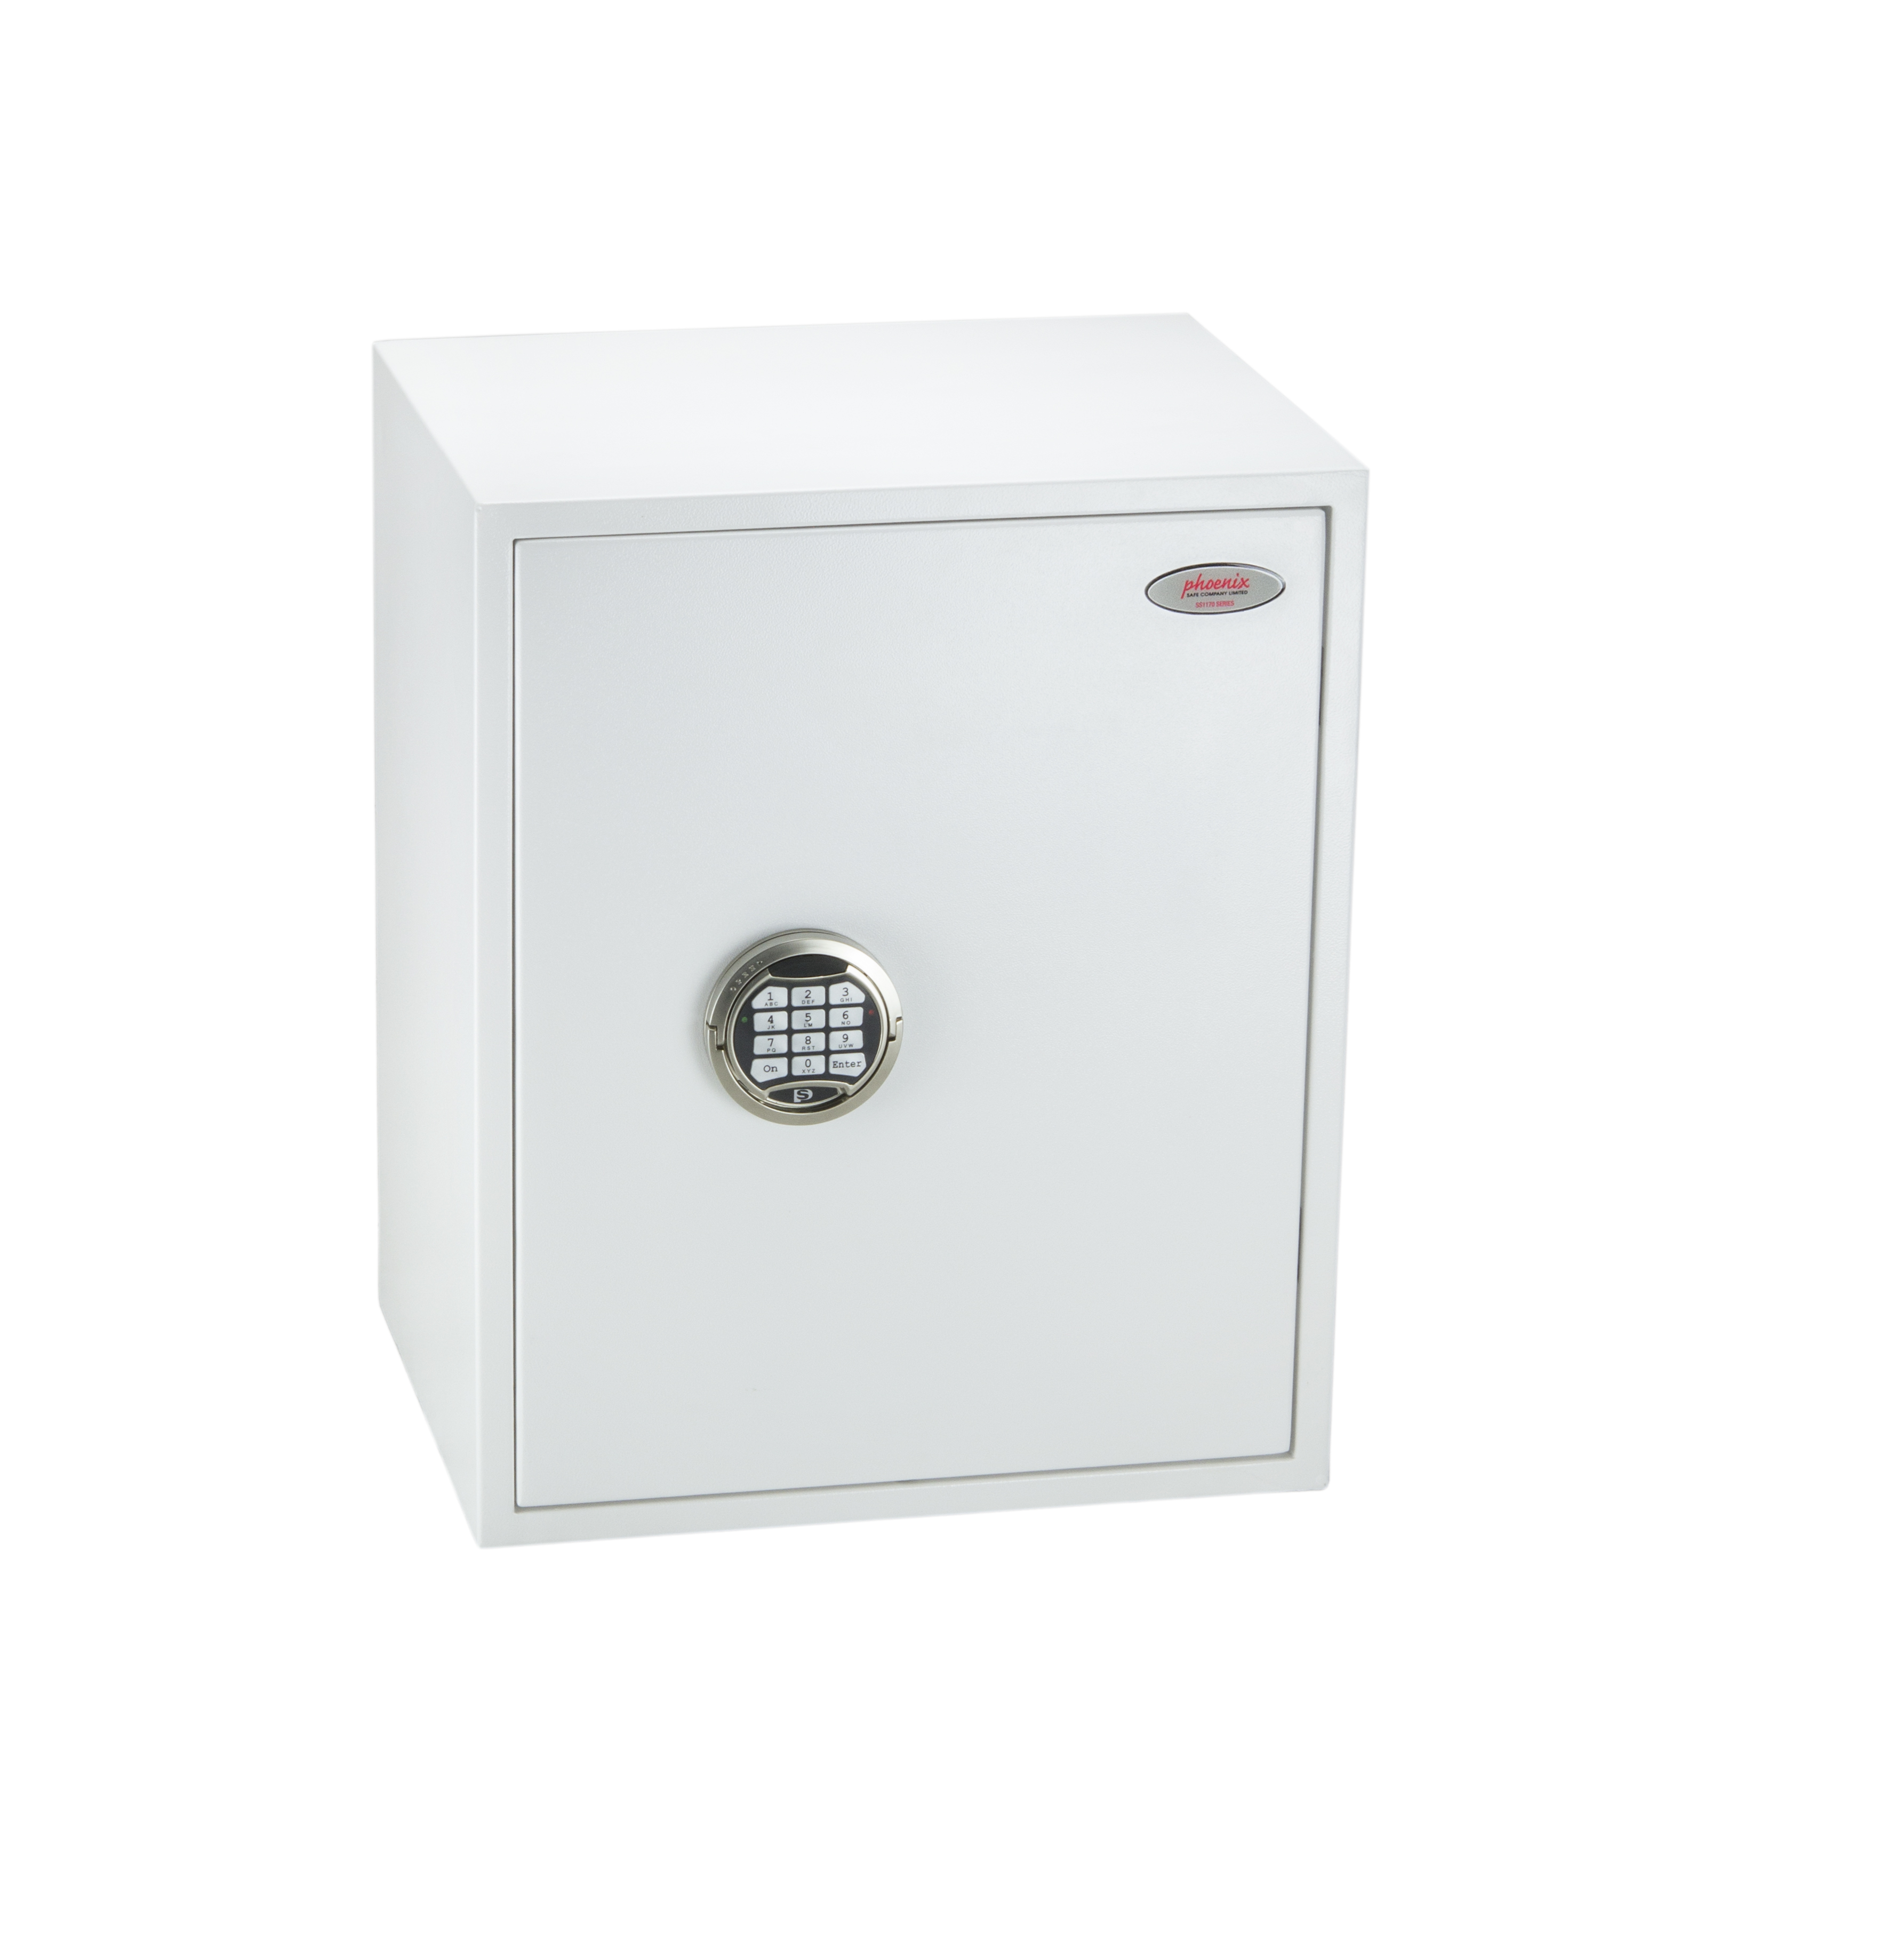 Safes Phoenix Fortress Size 3 S2 Security Safe Electronic Lock White SS1183E